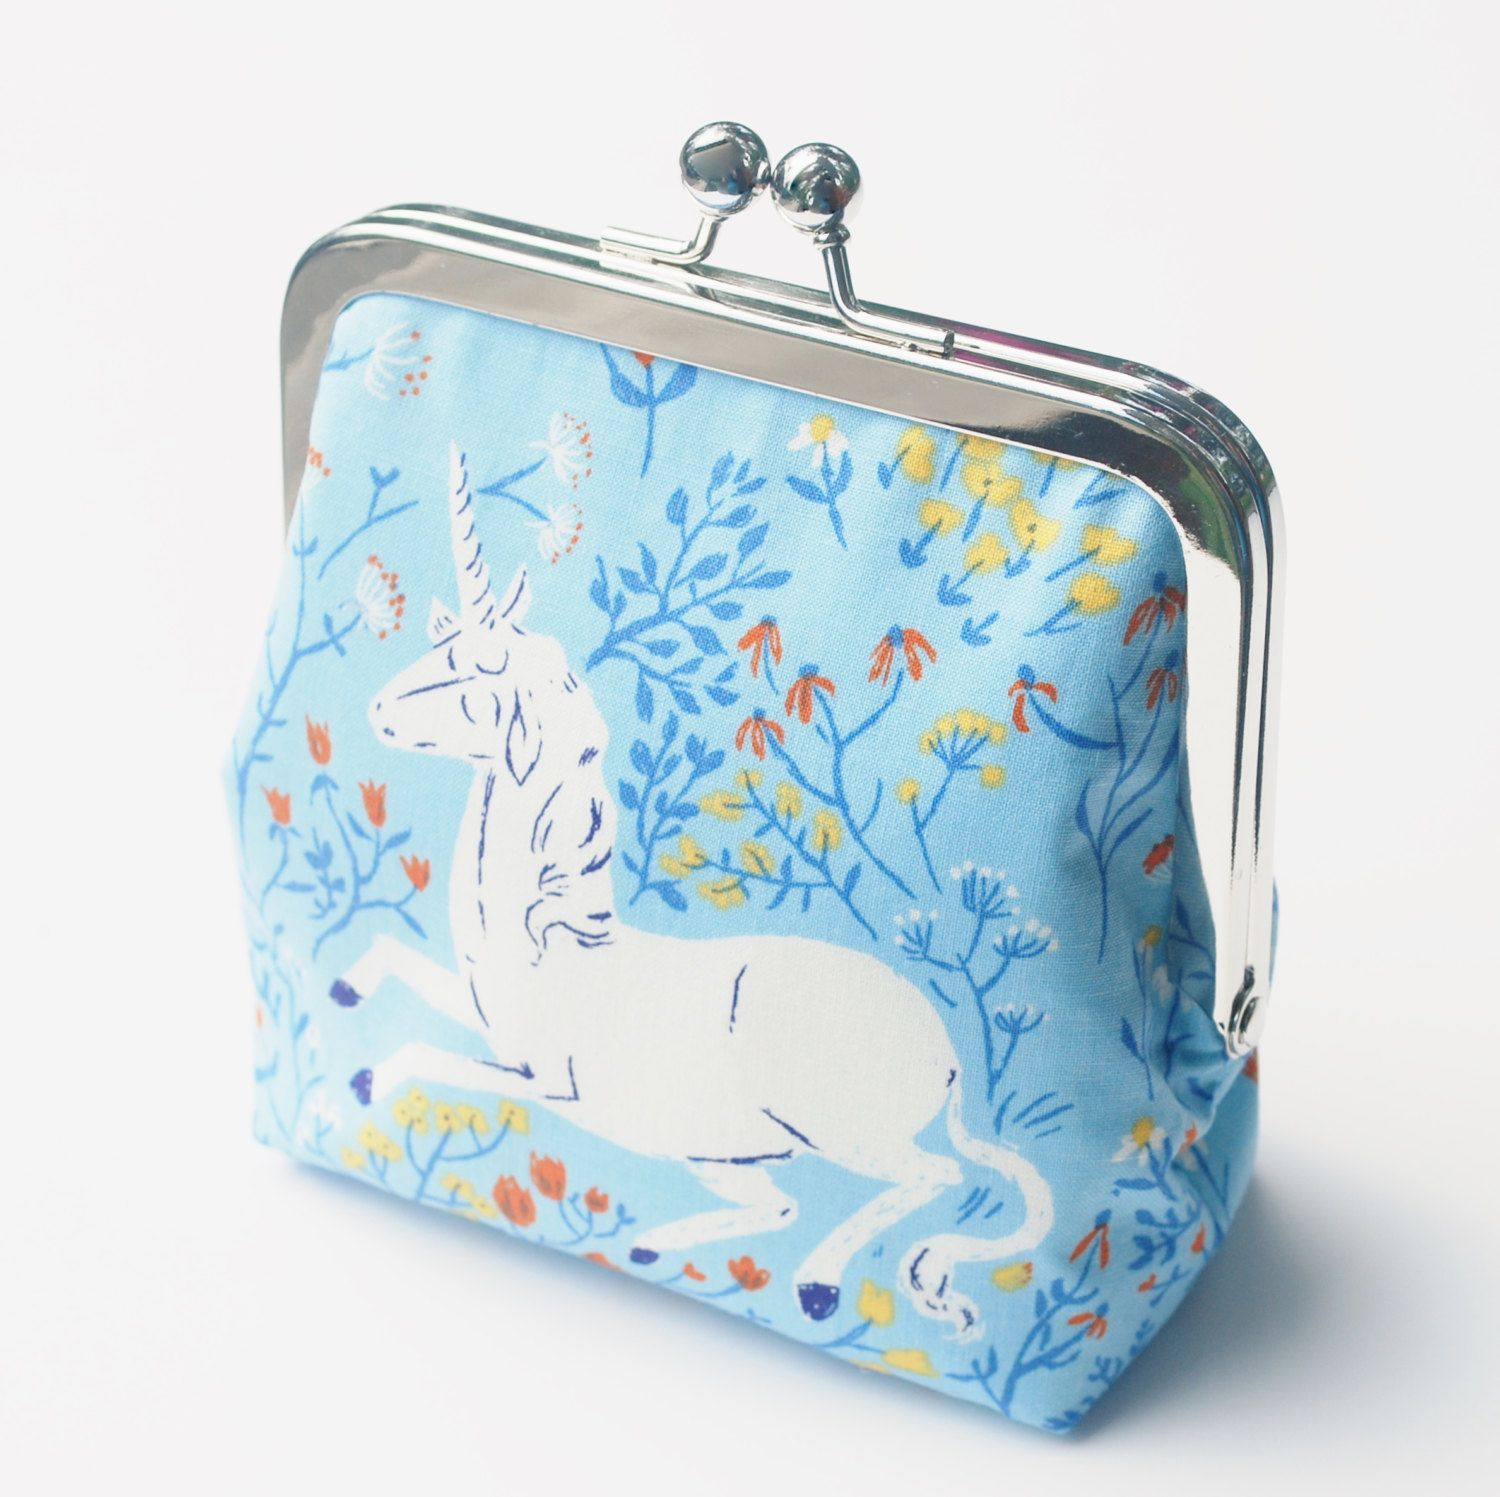 Unicorn Purse / Alaska Bag Company